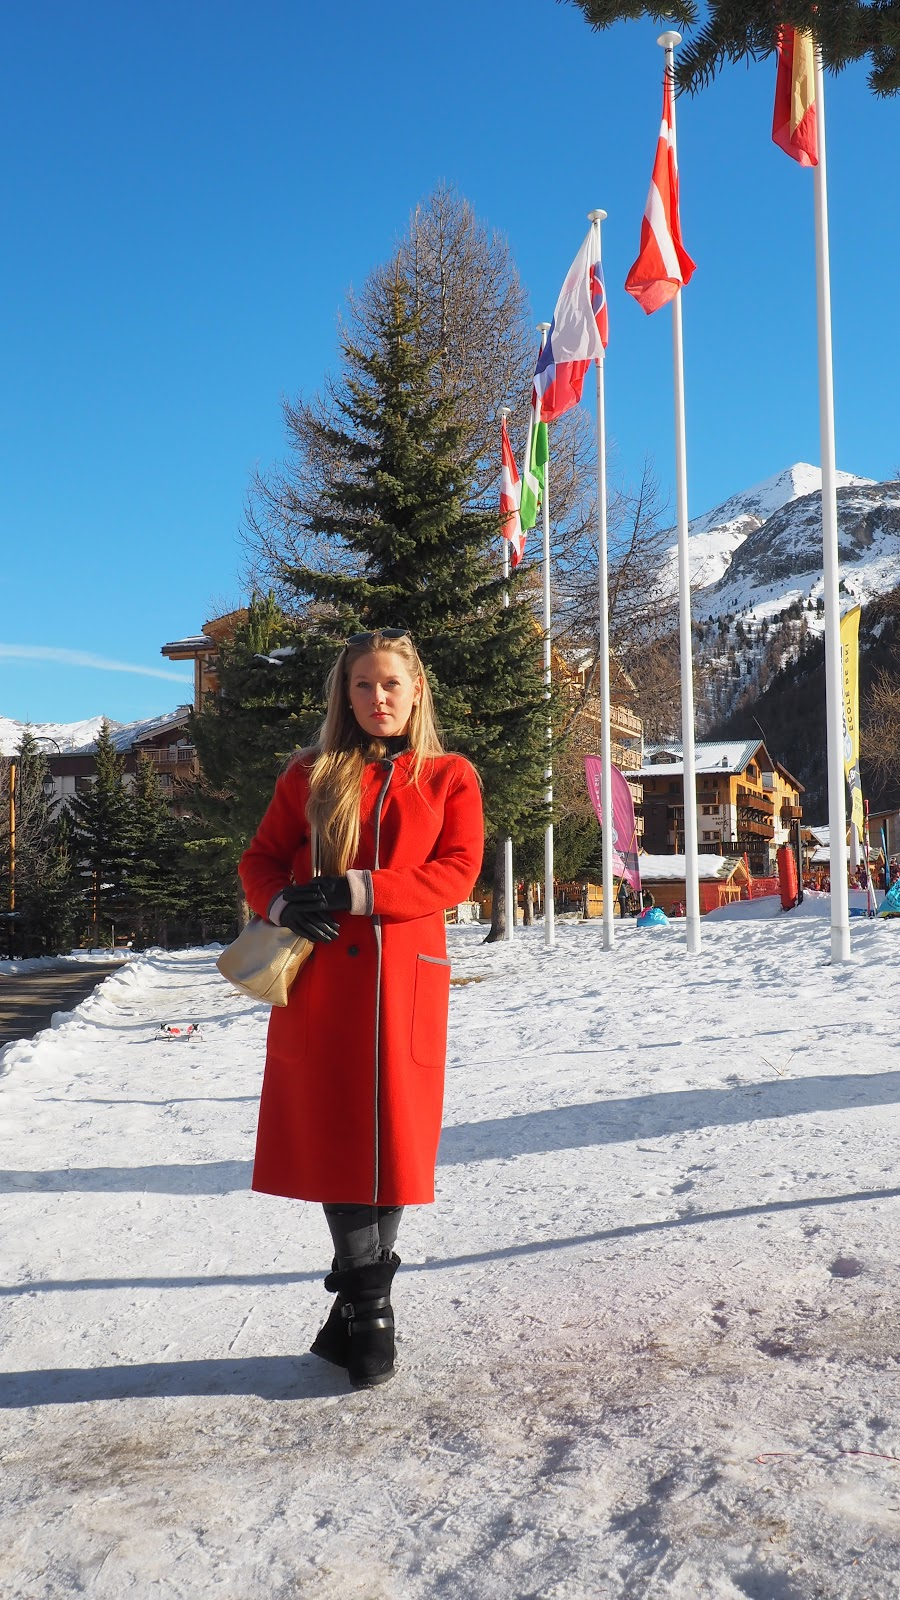 Blonde Girl wearing red coat in the snow, Val d'Isere, France